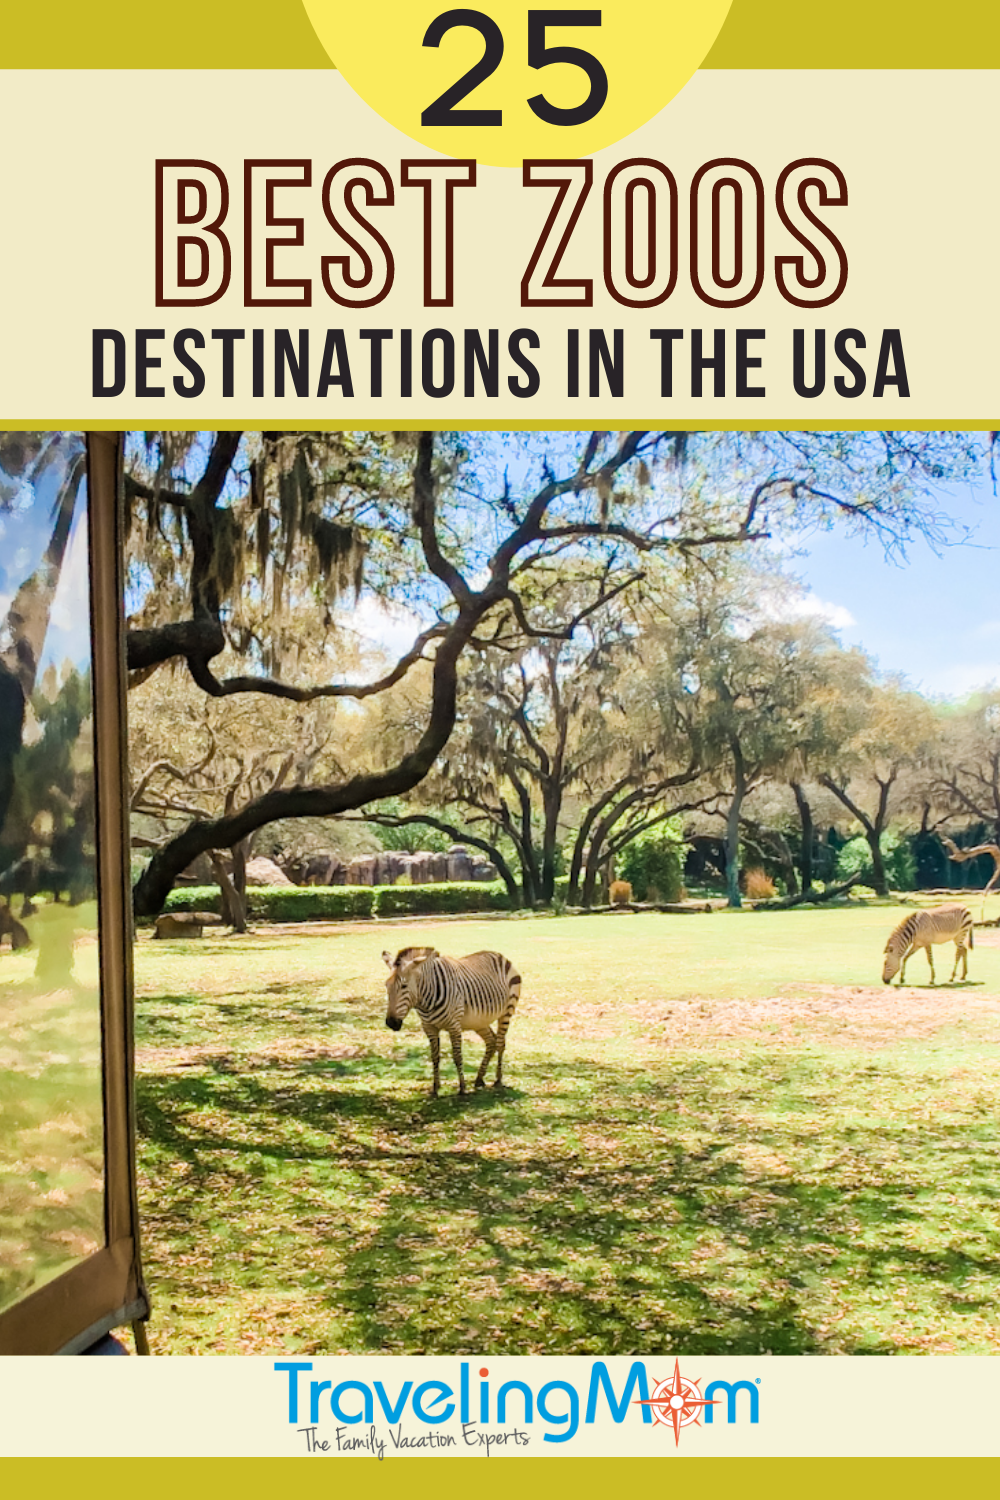 zebras on a field with trees pin has text 25 best zoos destinations in the usa written on it